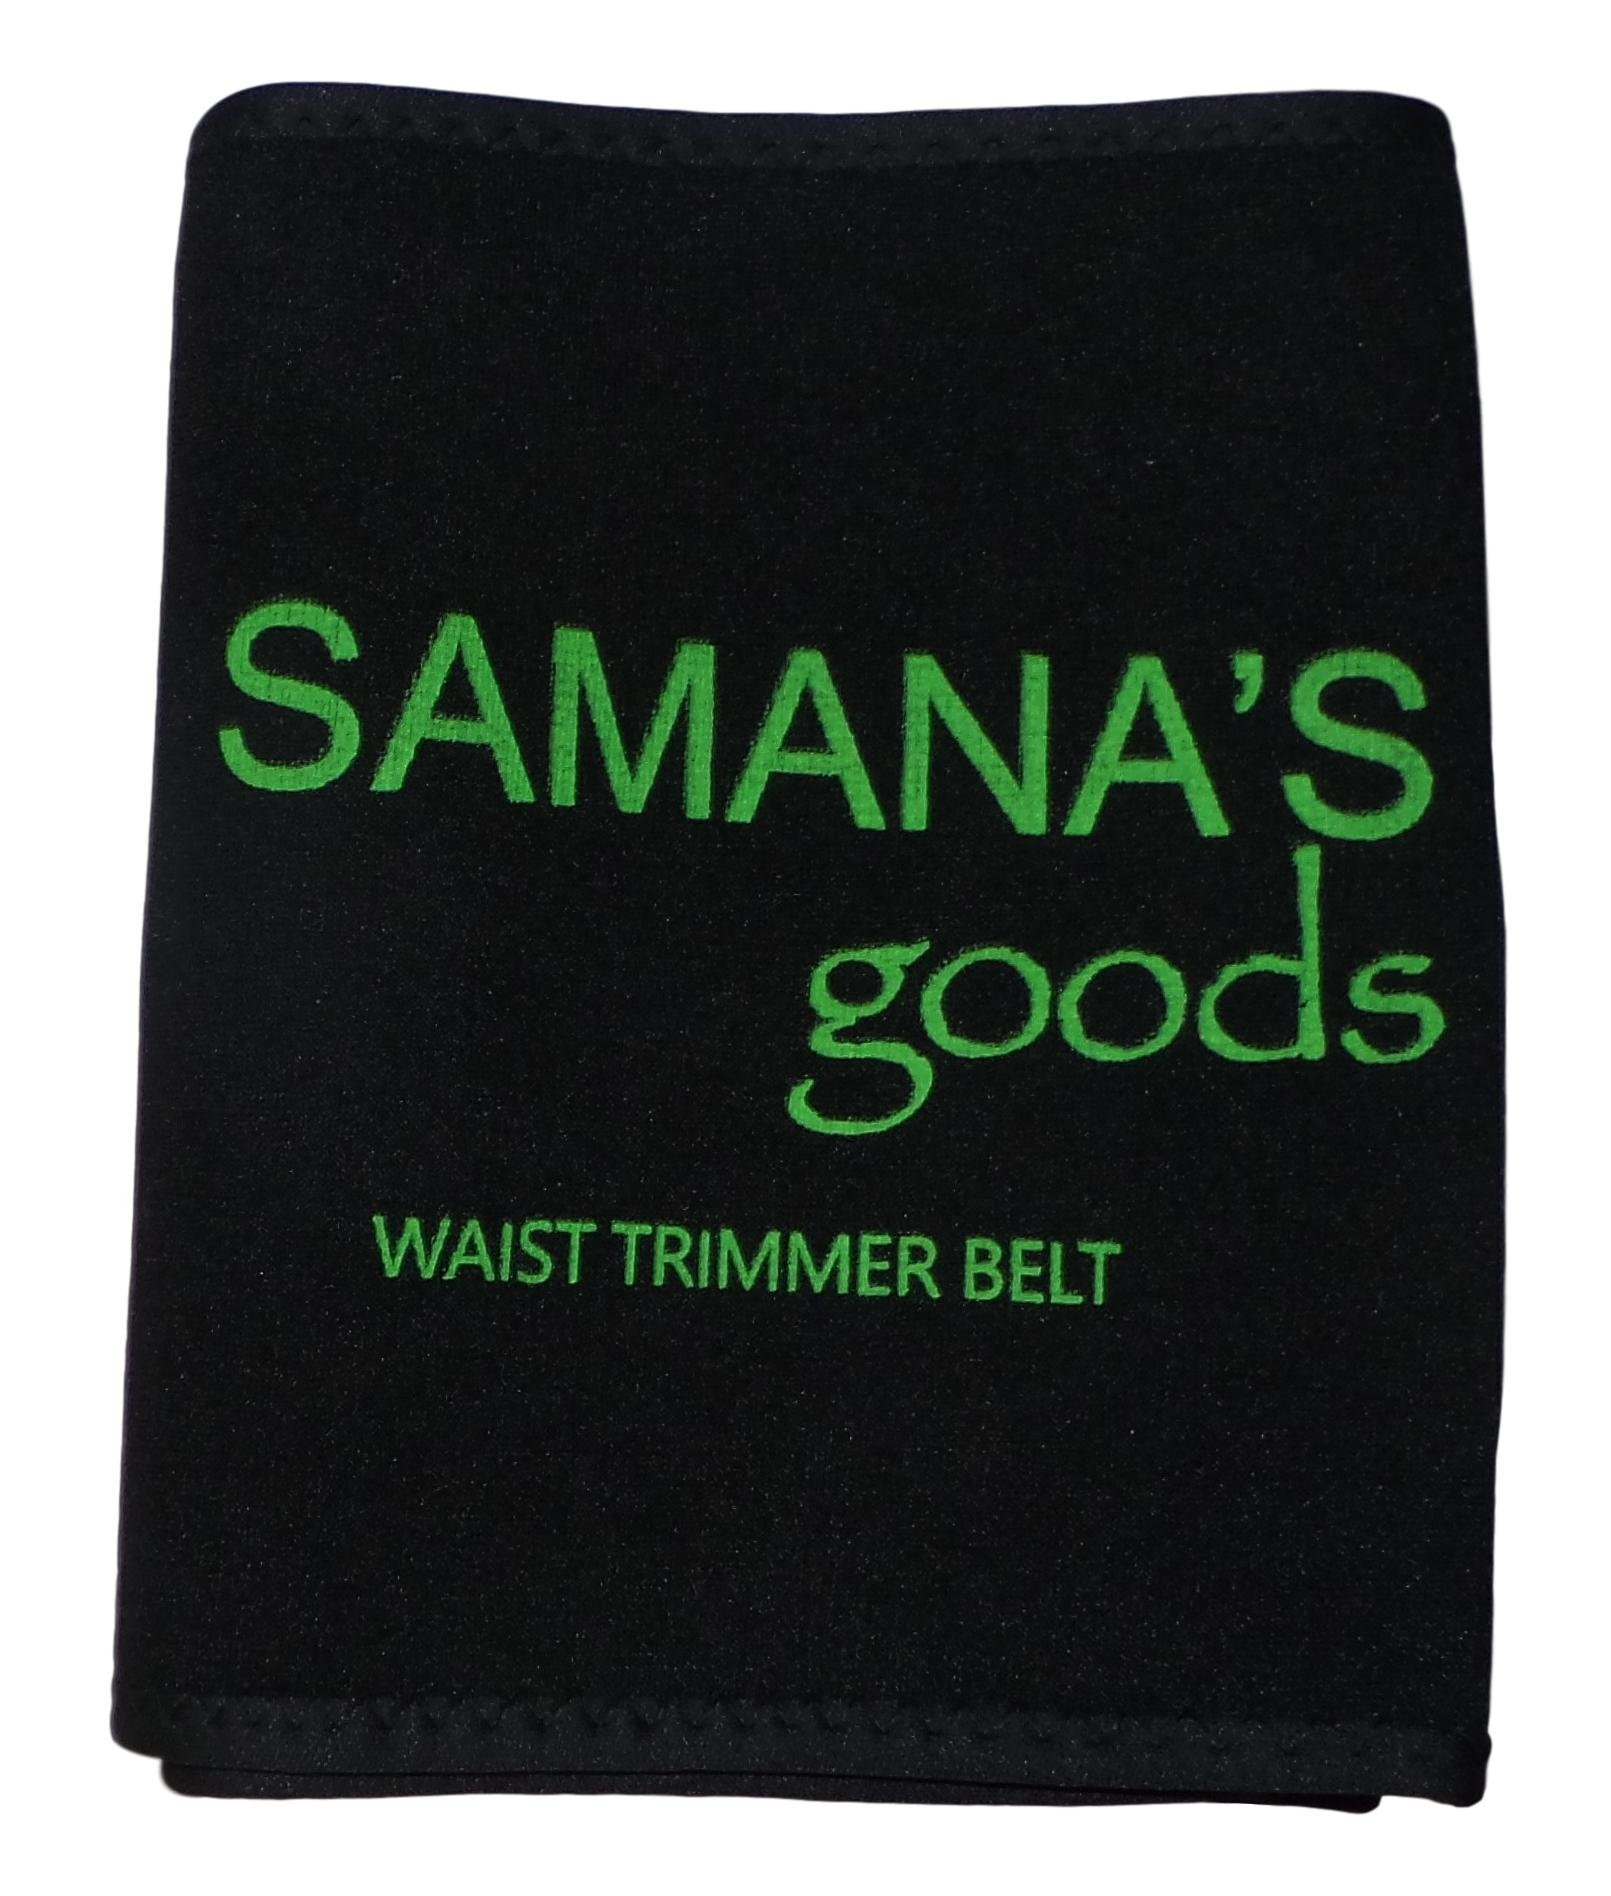 Sweat Waist Trimmer Belt (Medium)